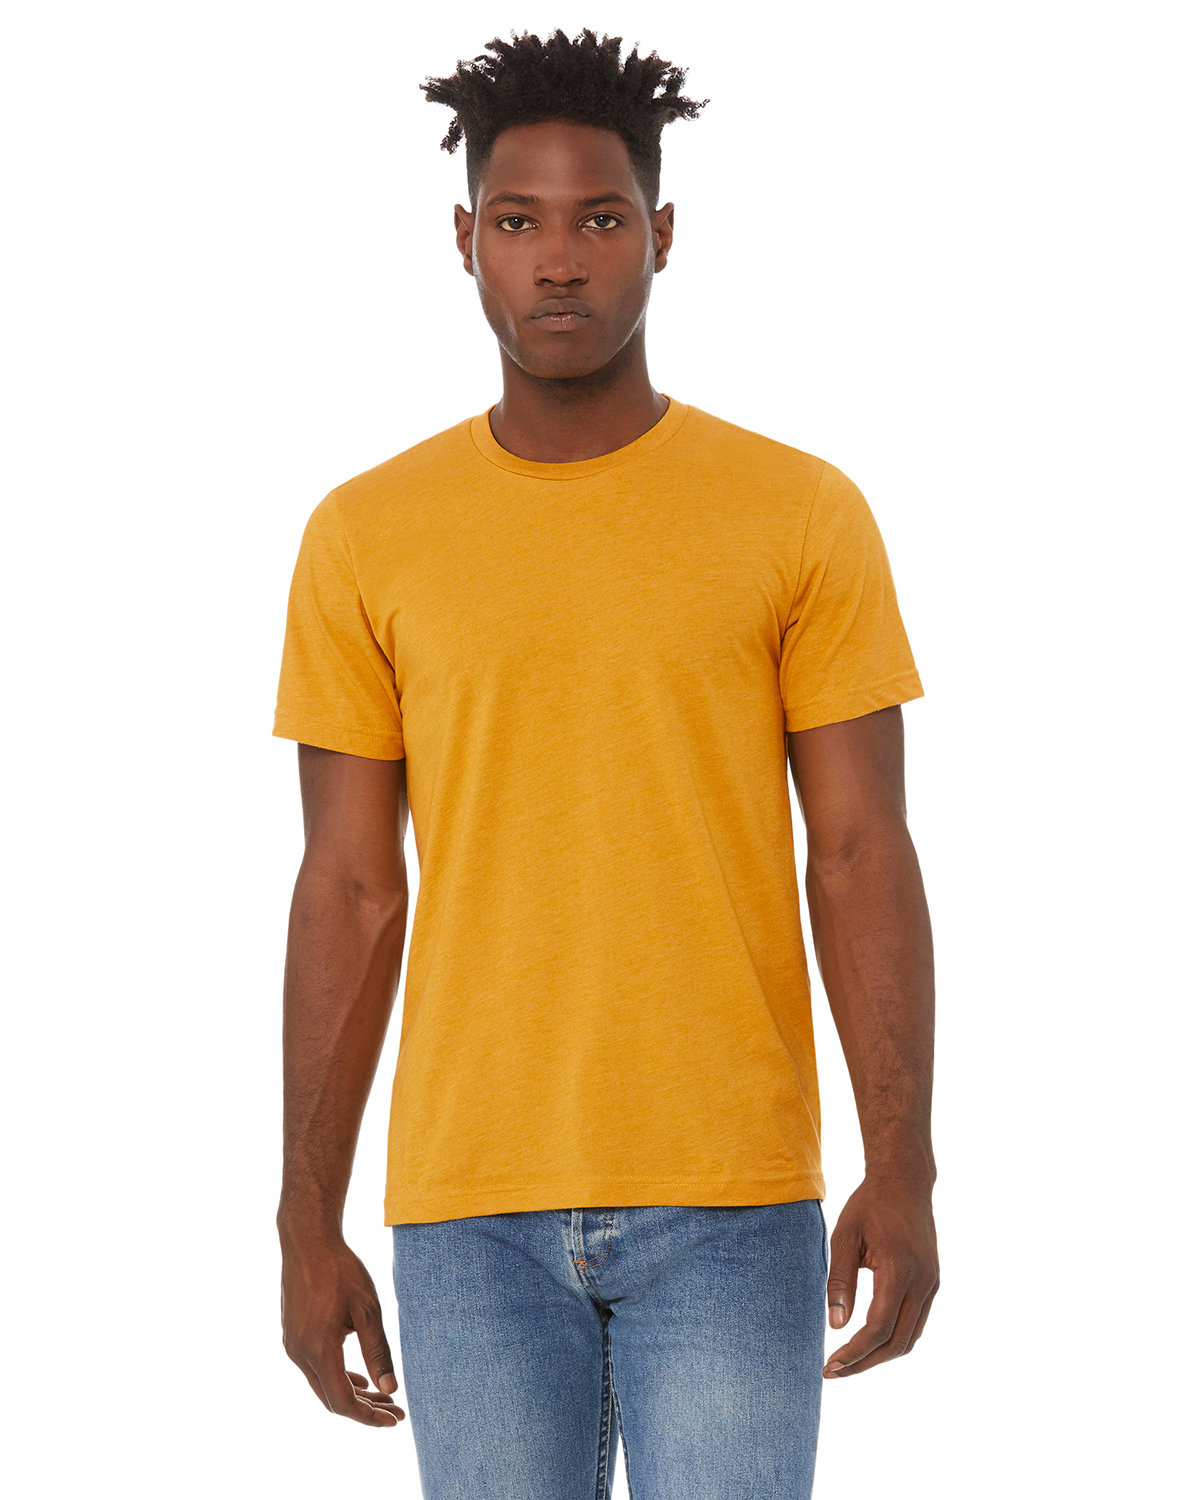 Bella + Canvas Unisex Heather CVC T-Shirt HEATHER MUSTARD